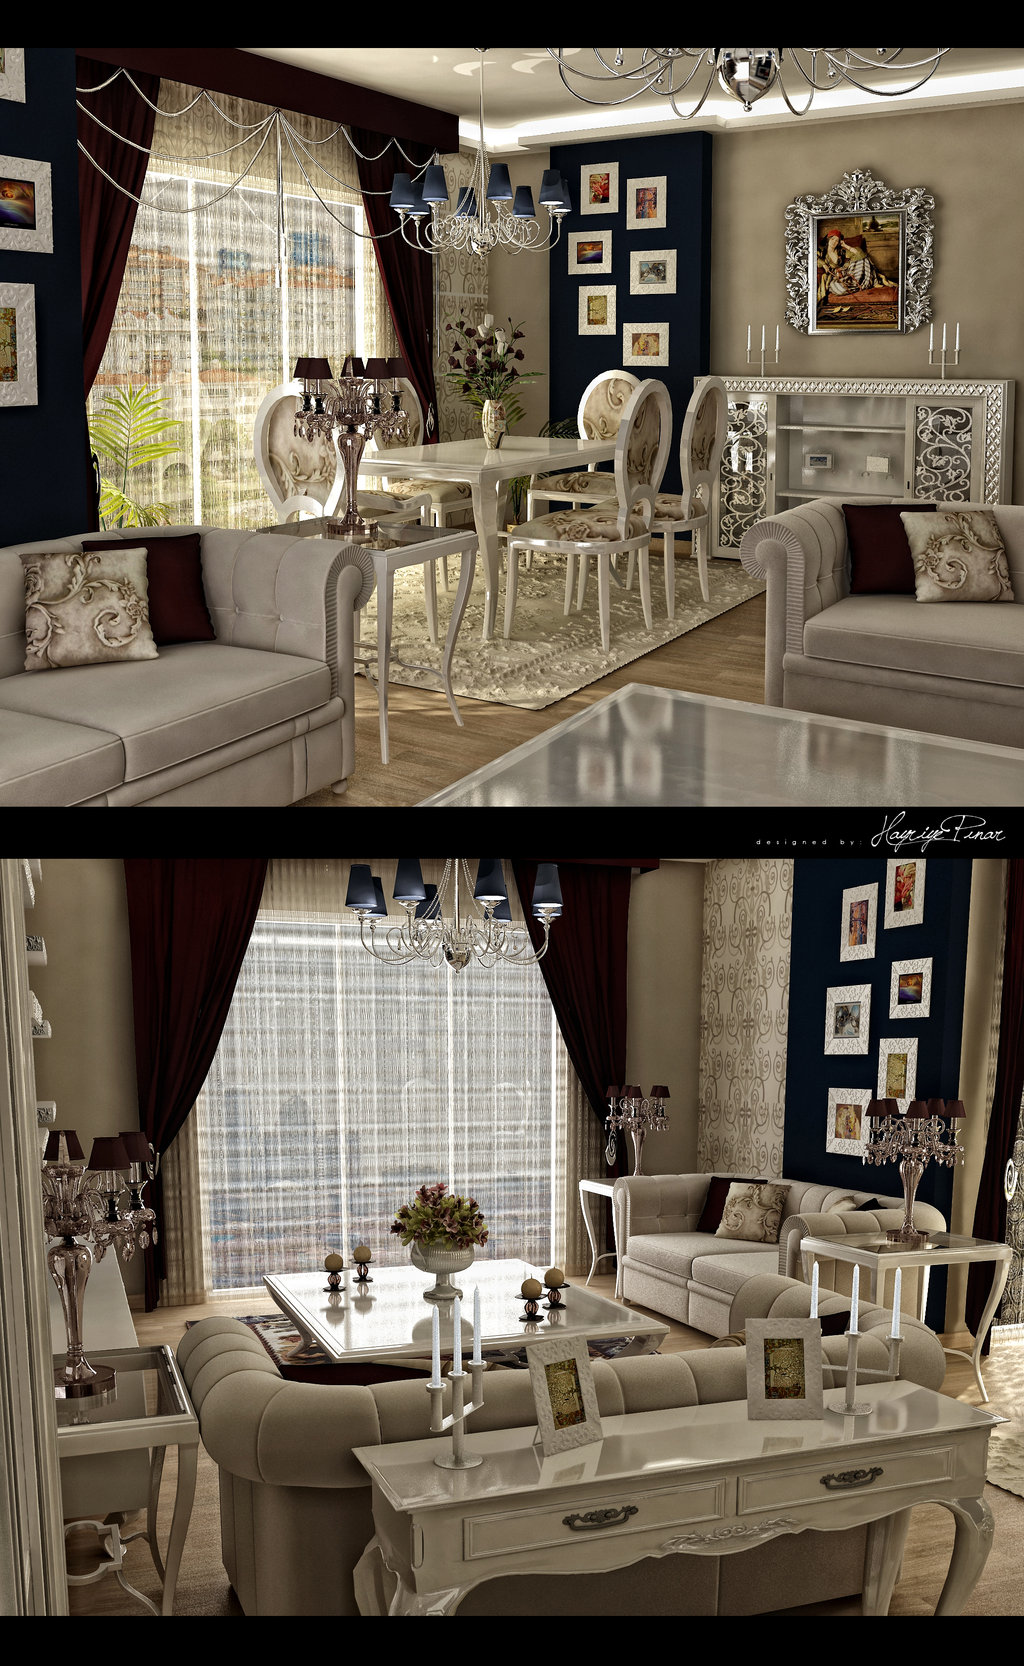 Living Room And Dining Room Decorating Ideas: Classic And Retro Style Living Rooms